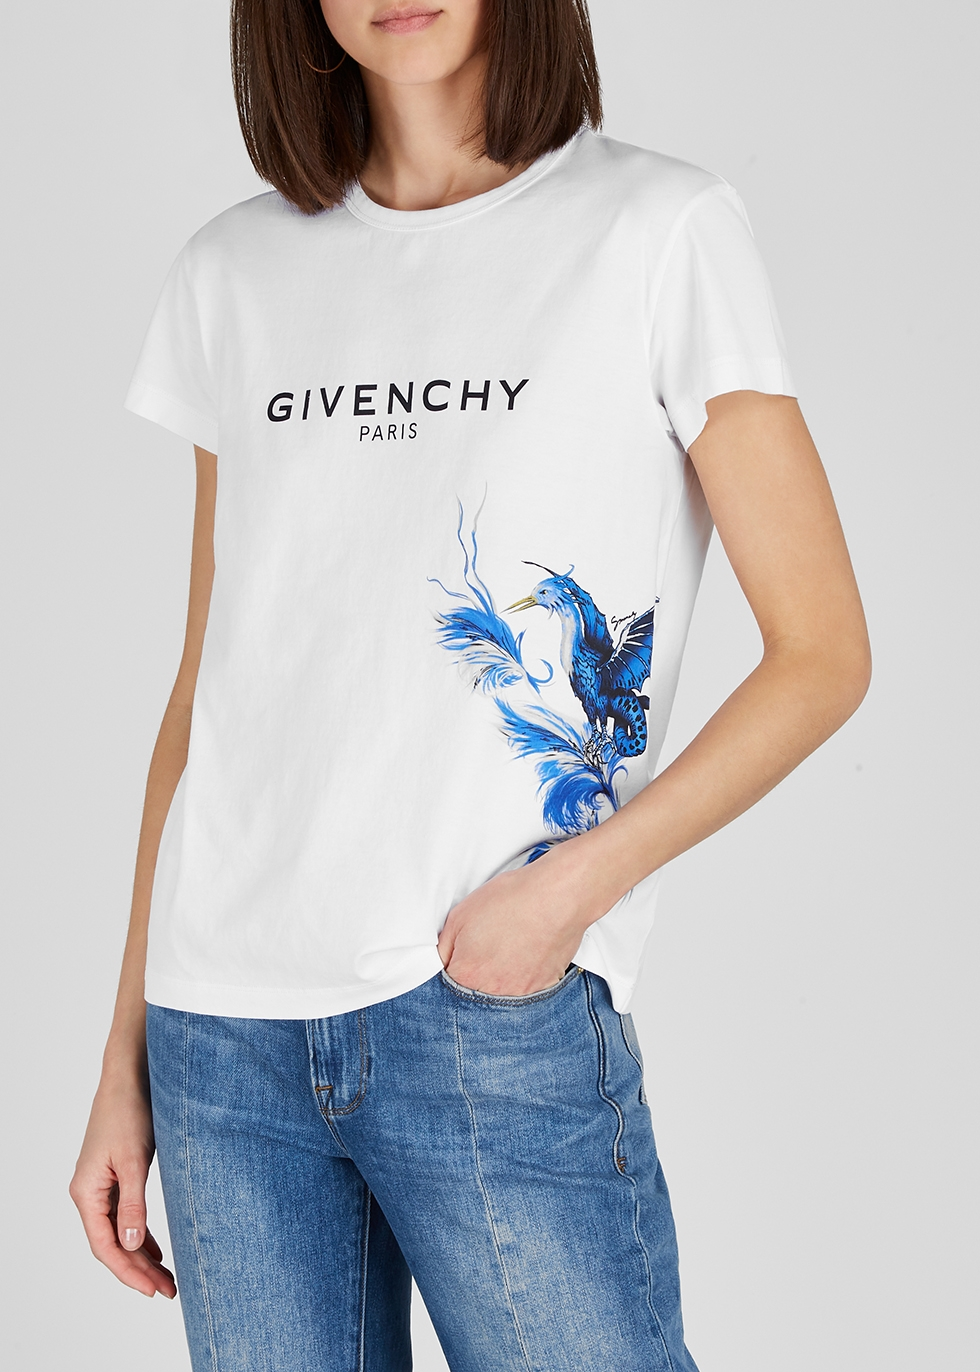 White printed cotton T-shirt - Givenchy